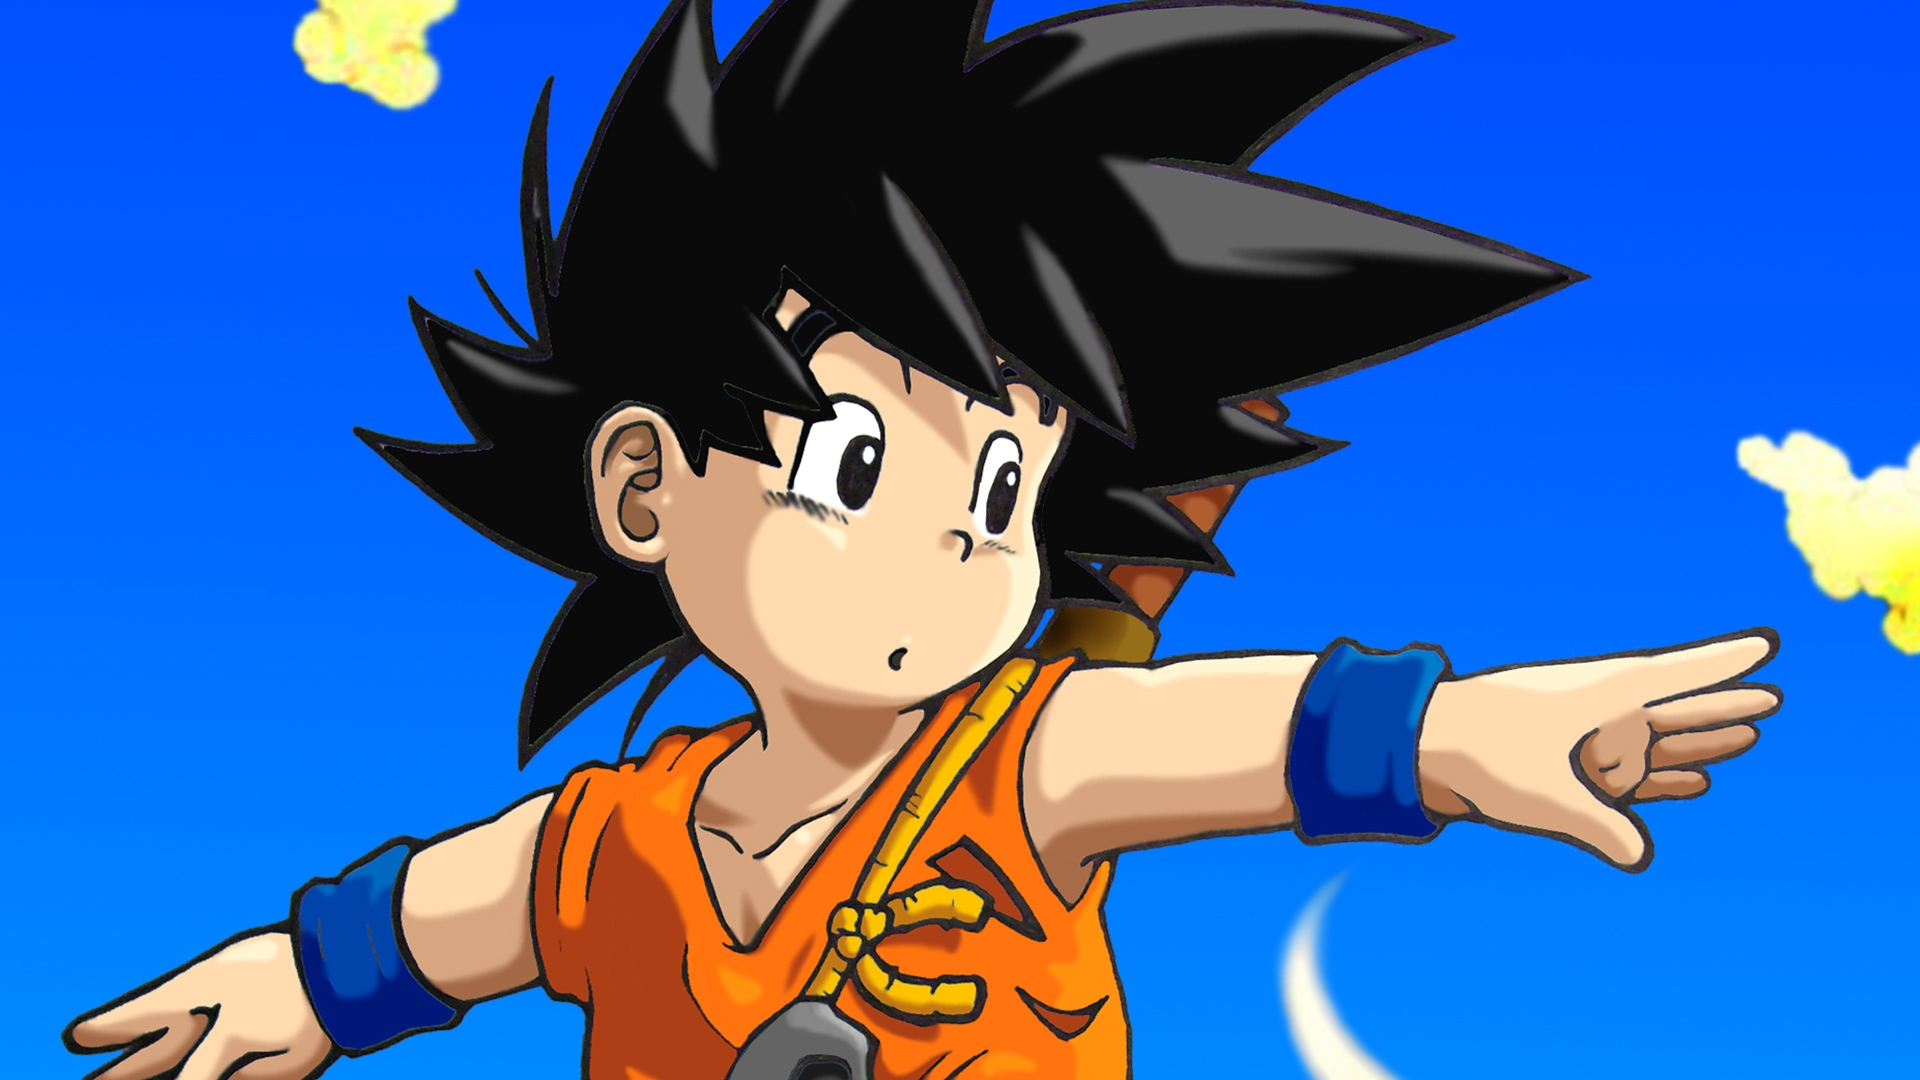 Sad Anime Quotes Wallpaper For Computers Son Goku High Definition Wallpapers Hd Wallpapers